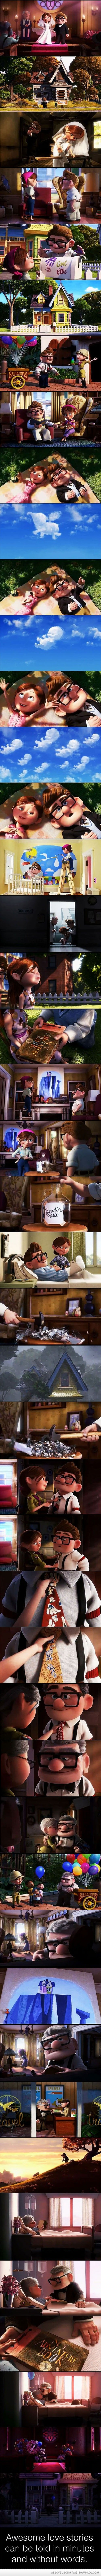 Well done, Pixar